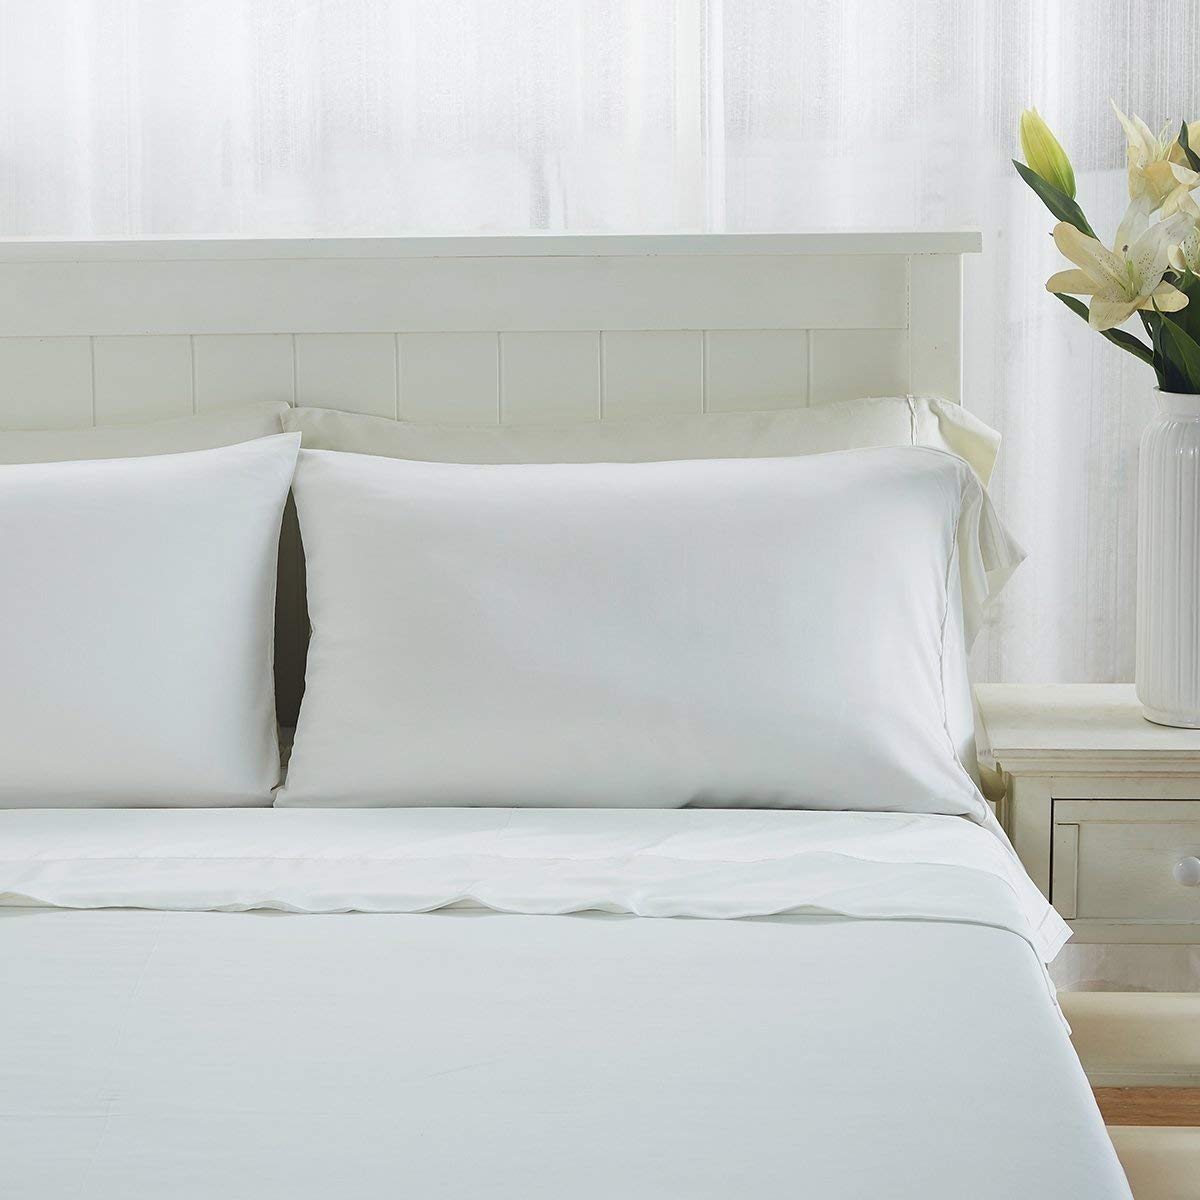 DTY Bamboo Sheets - Best Sheets for Night Sweats